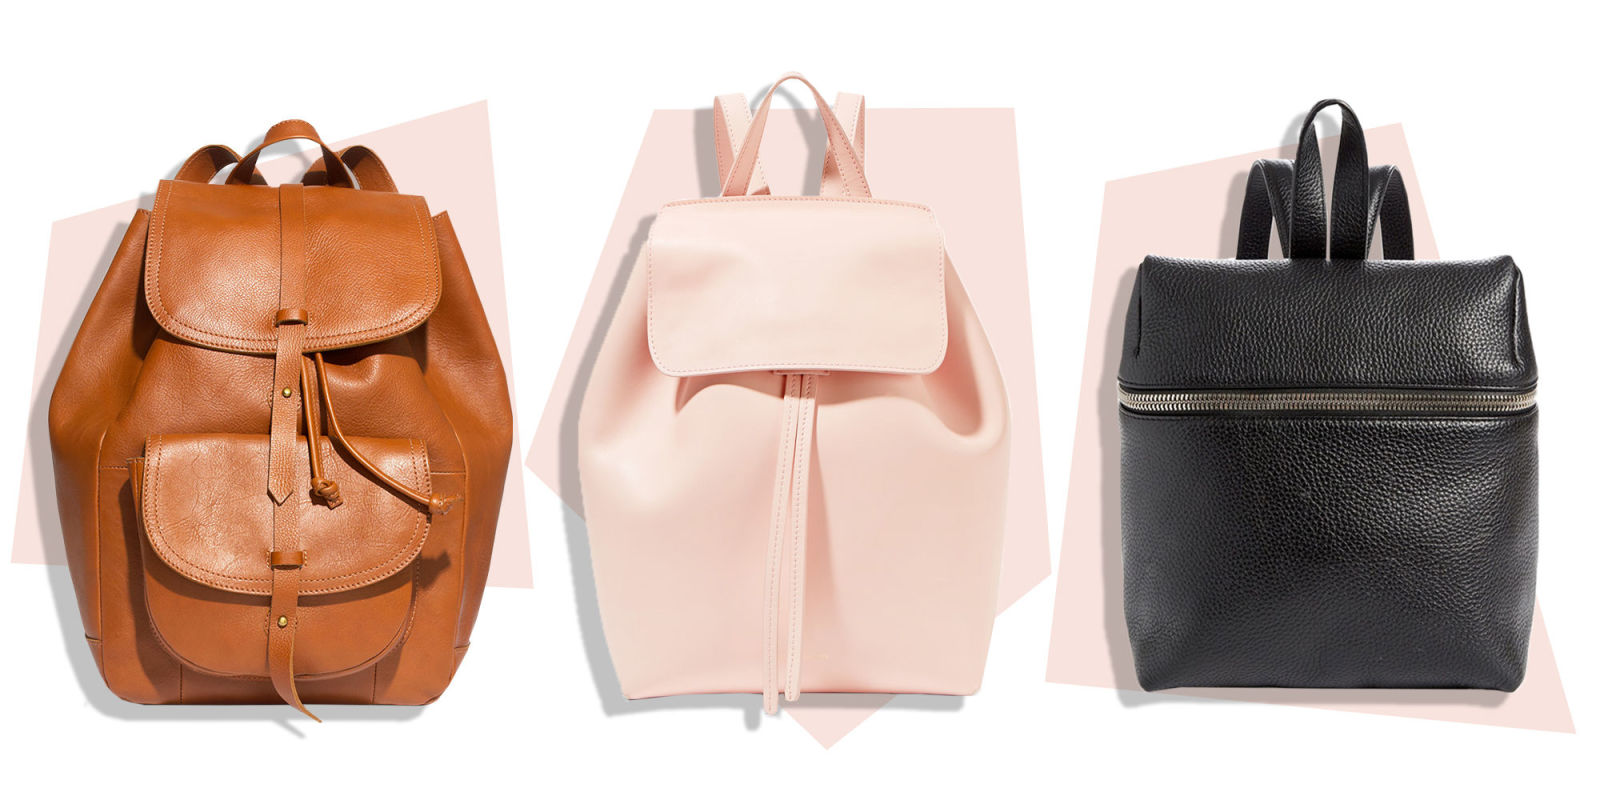 100  Best Bags Fall 2017 - Handbags & Purses On Trend - Best Products